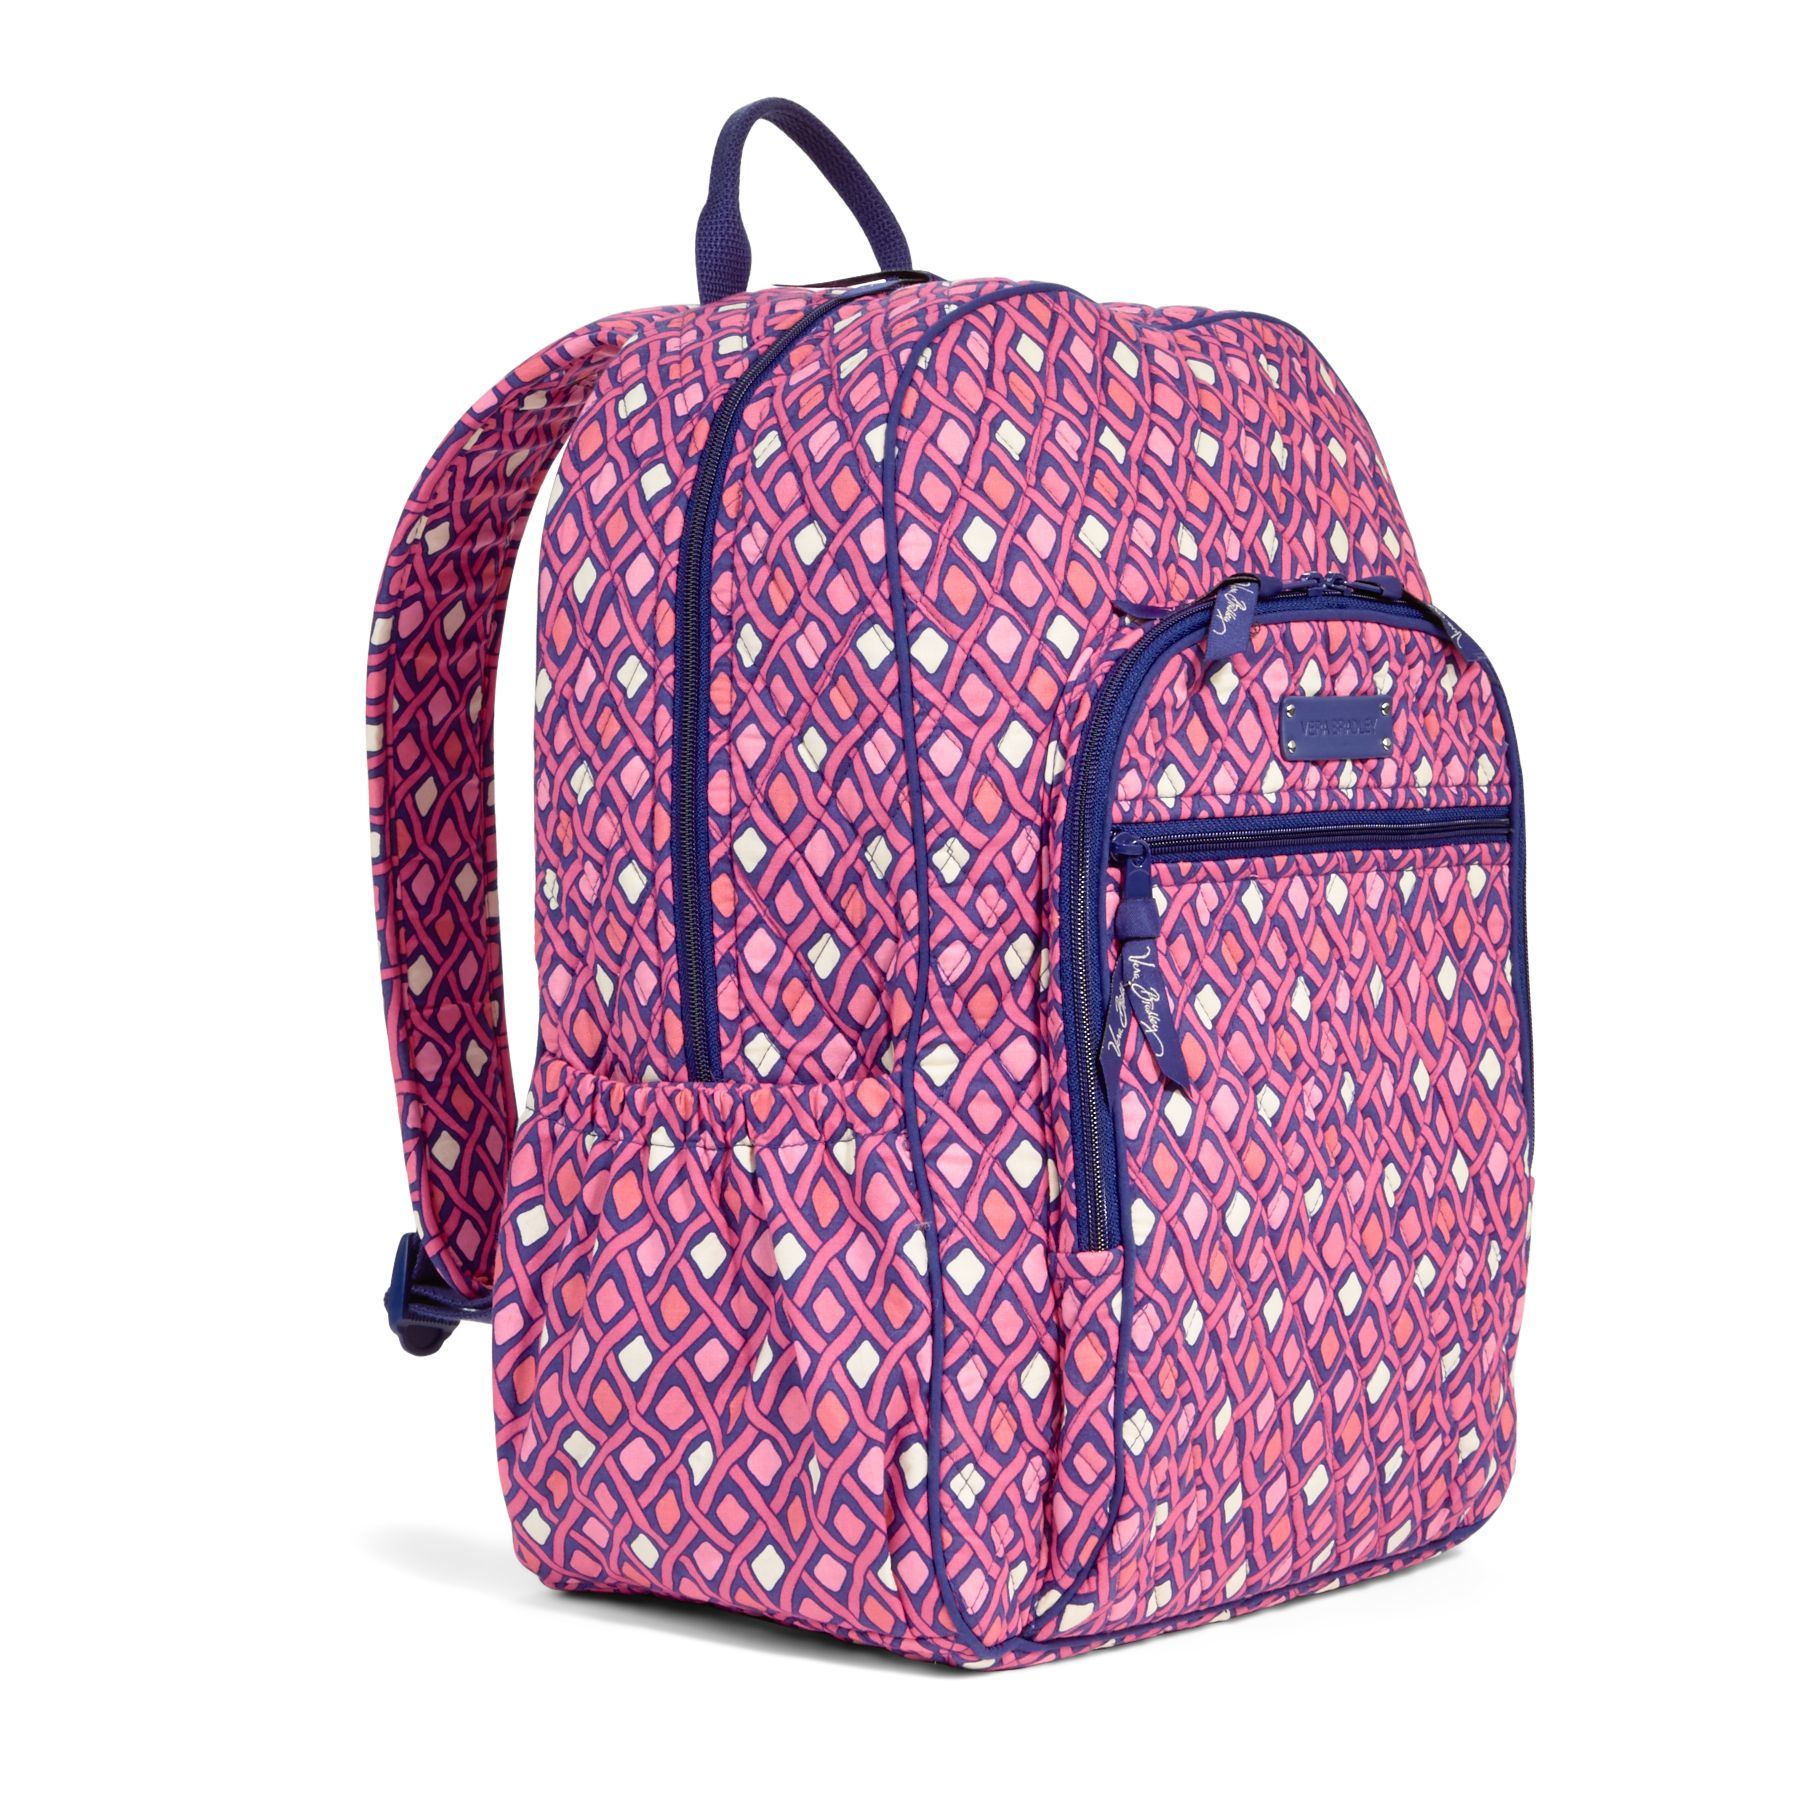 Vera Bradley Campus Backpack Bag